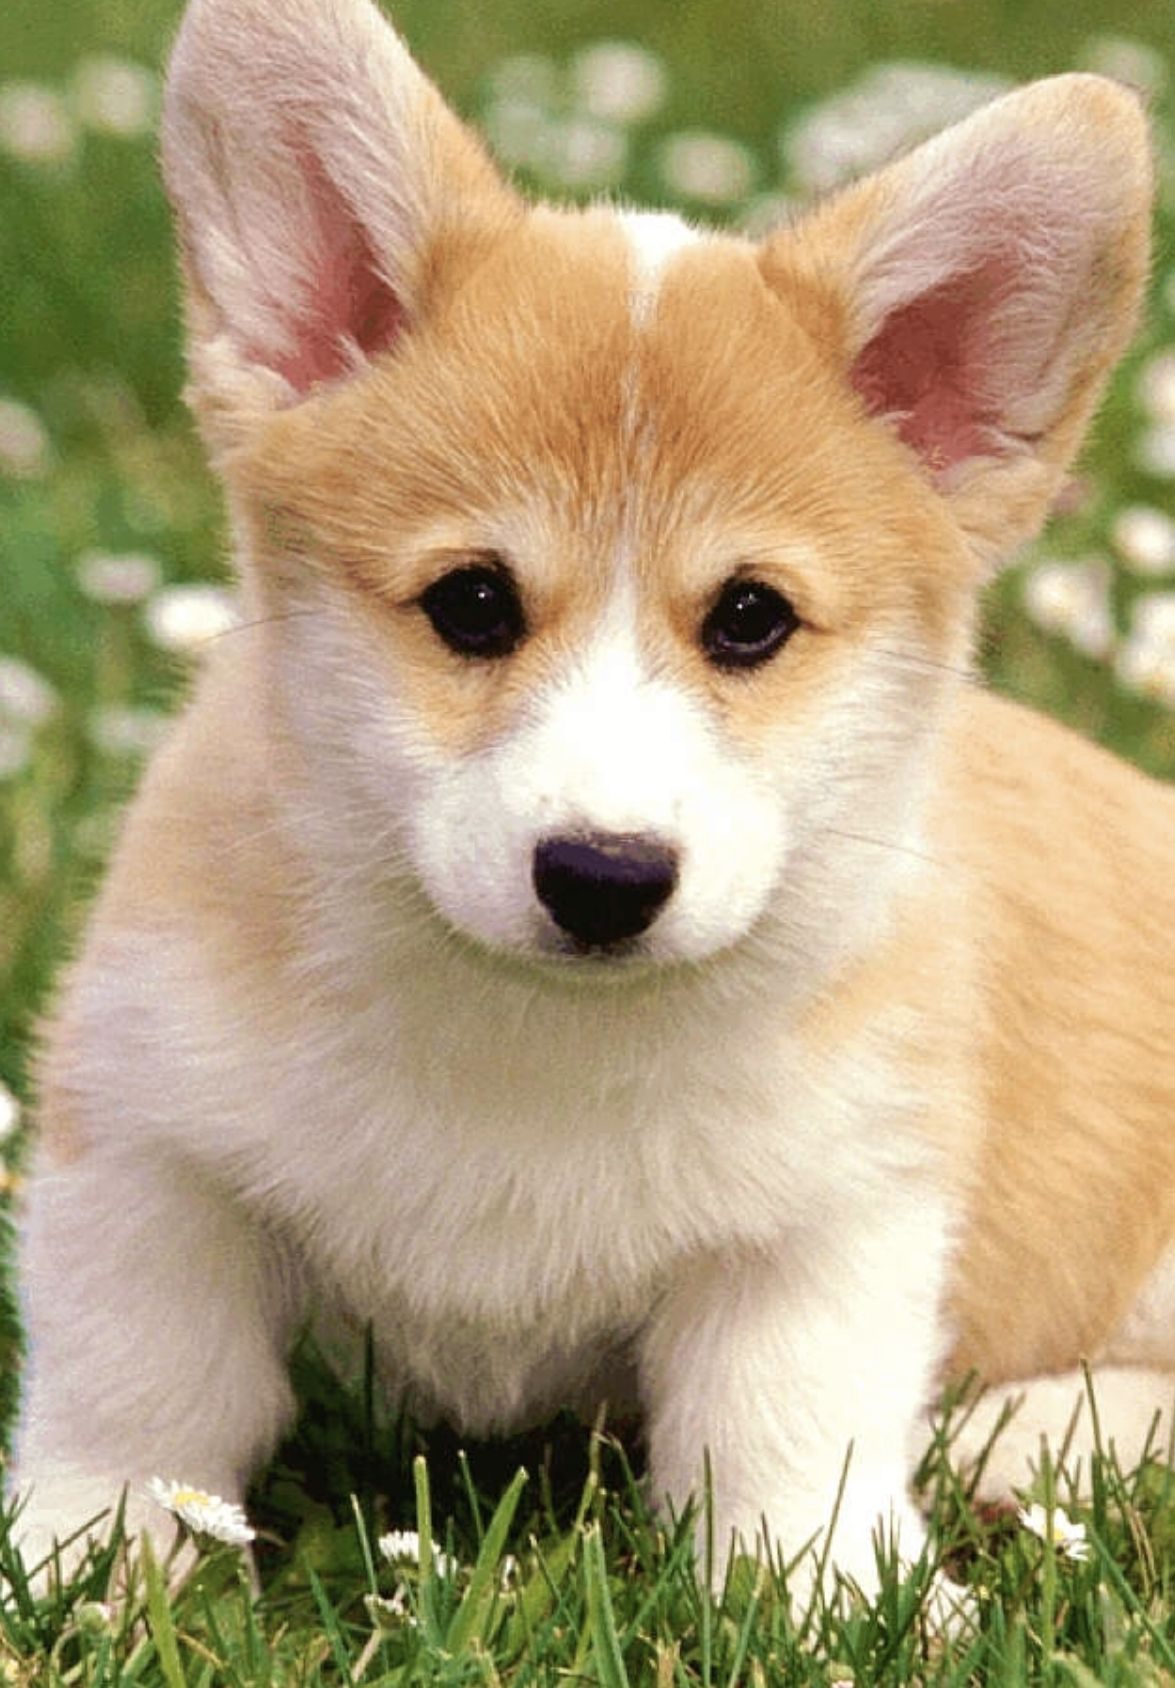 Pin By Lizzy On Cute Corgi Picture Cute Puppies Cute Puppy Wallpaper Puppies